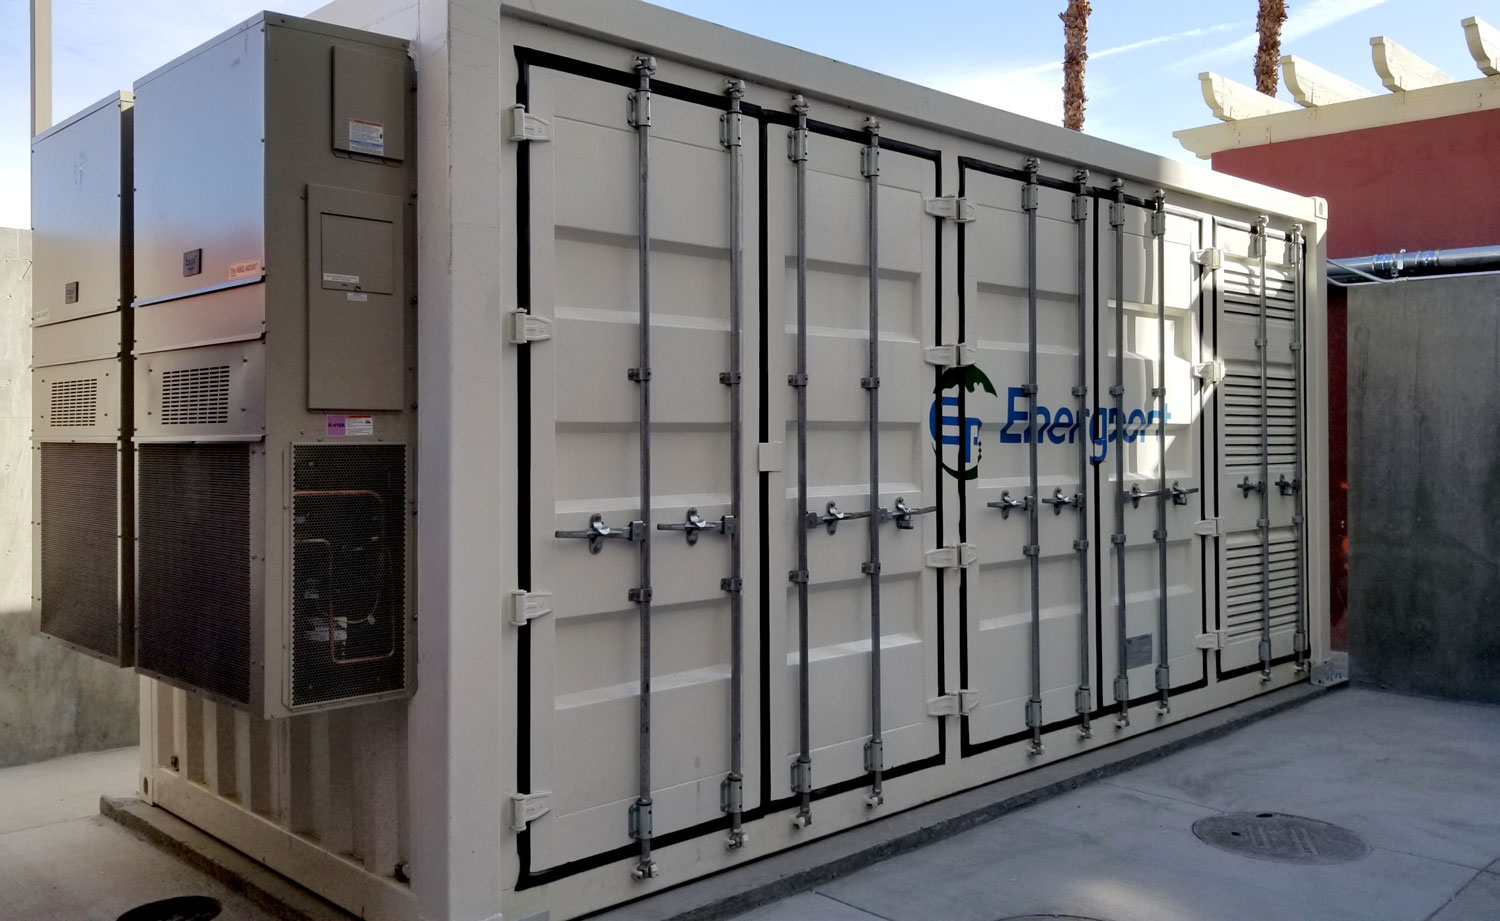 Aeterna Energy adds solar+storage system to California movie theater